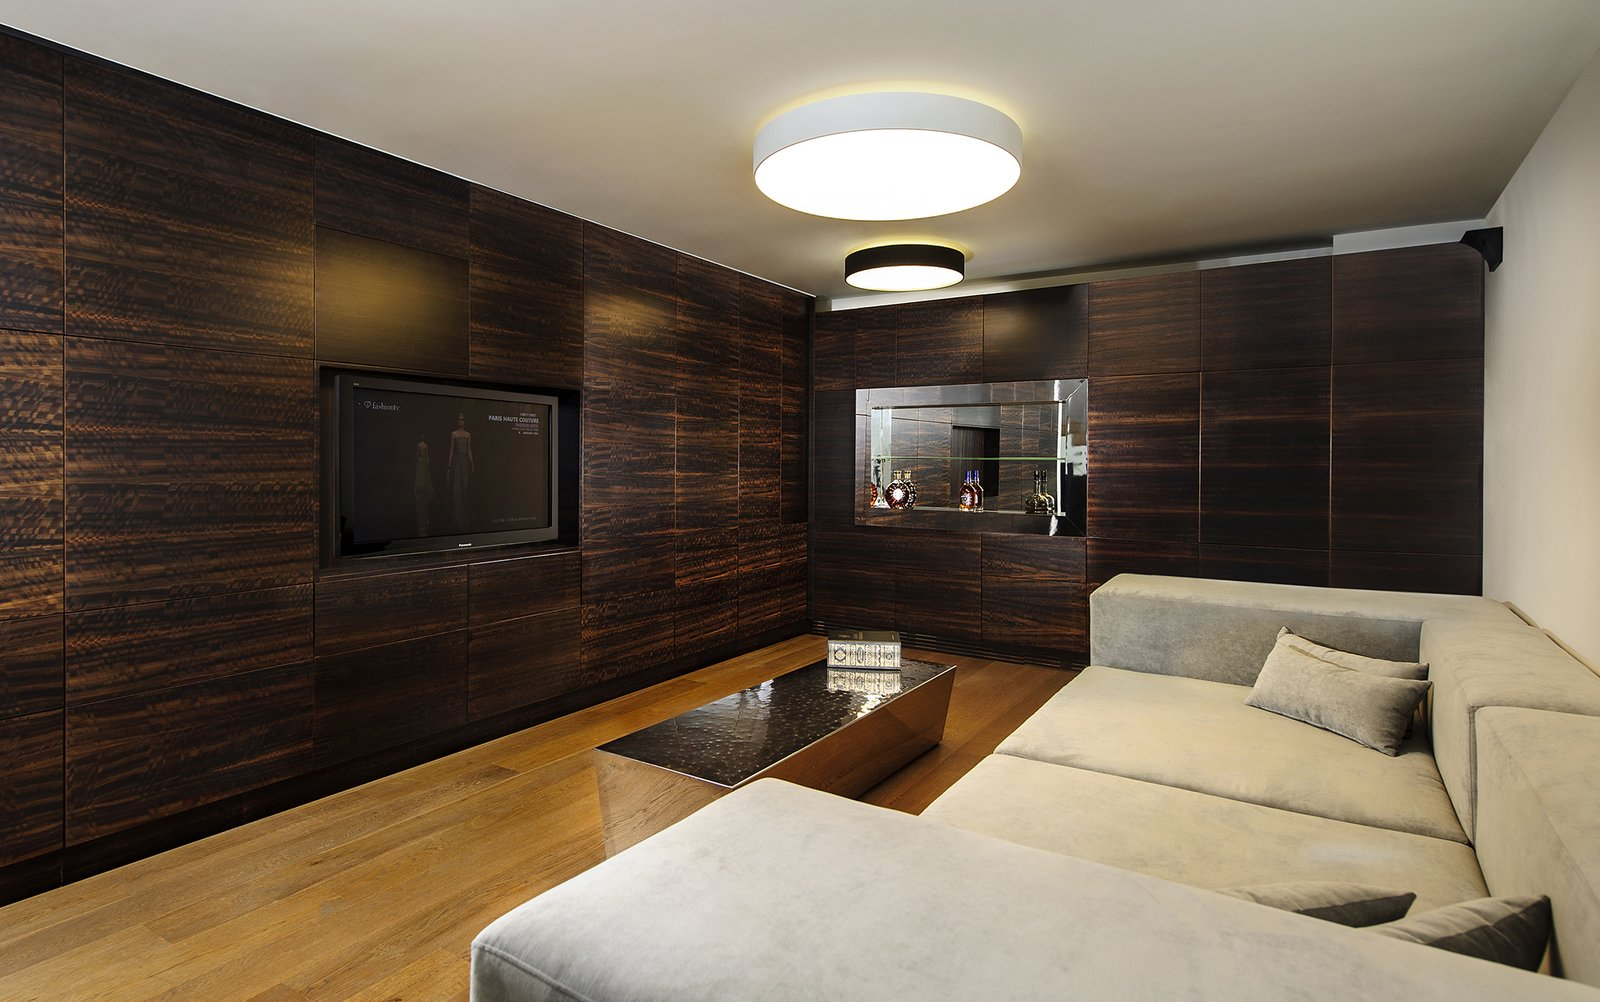 Downstairs in the basement, an entertainment room is inspired by the idea of an English pub. Dark, rich wood tones are favored in this popular meeting place for friends. The space was designed to be soundproof in order to maintain privacy from the two older children's bedrooms, also on the basement level. A wine bar, flat screen TV, and stainless steel table complete the space. Rishon Le Zion 3 by Sarah Akkoush